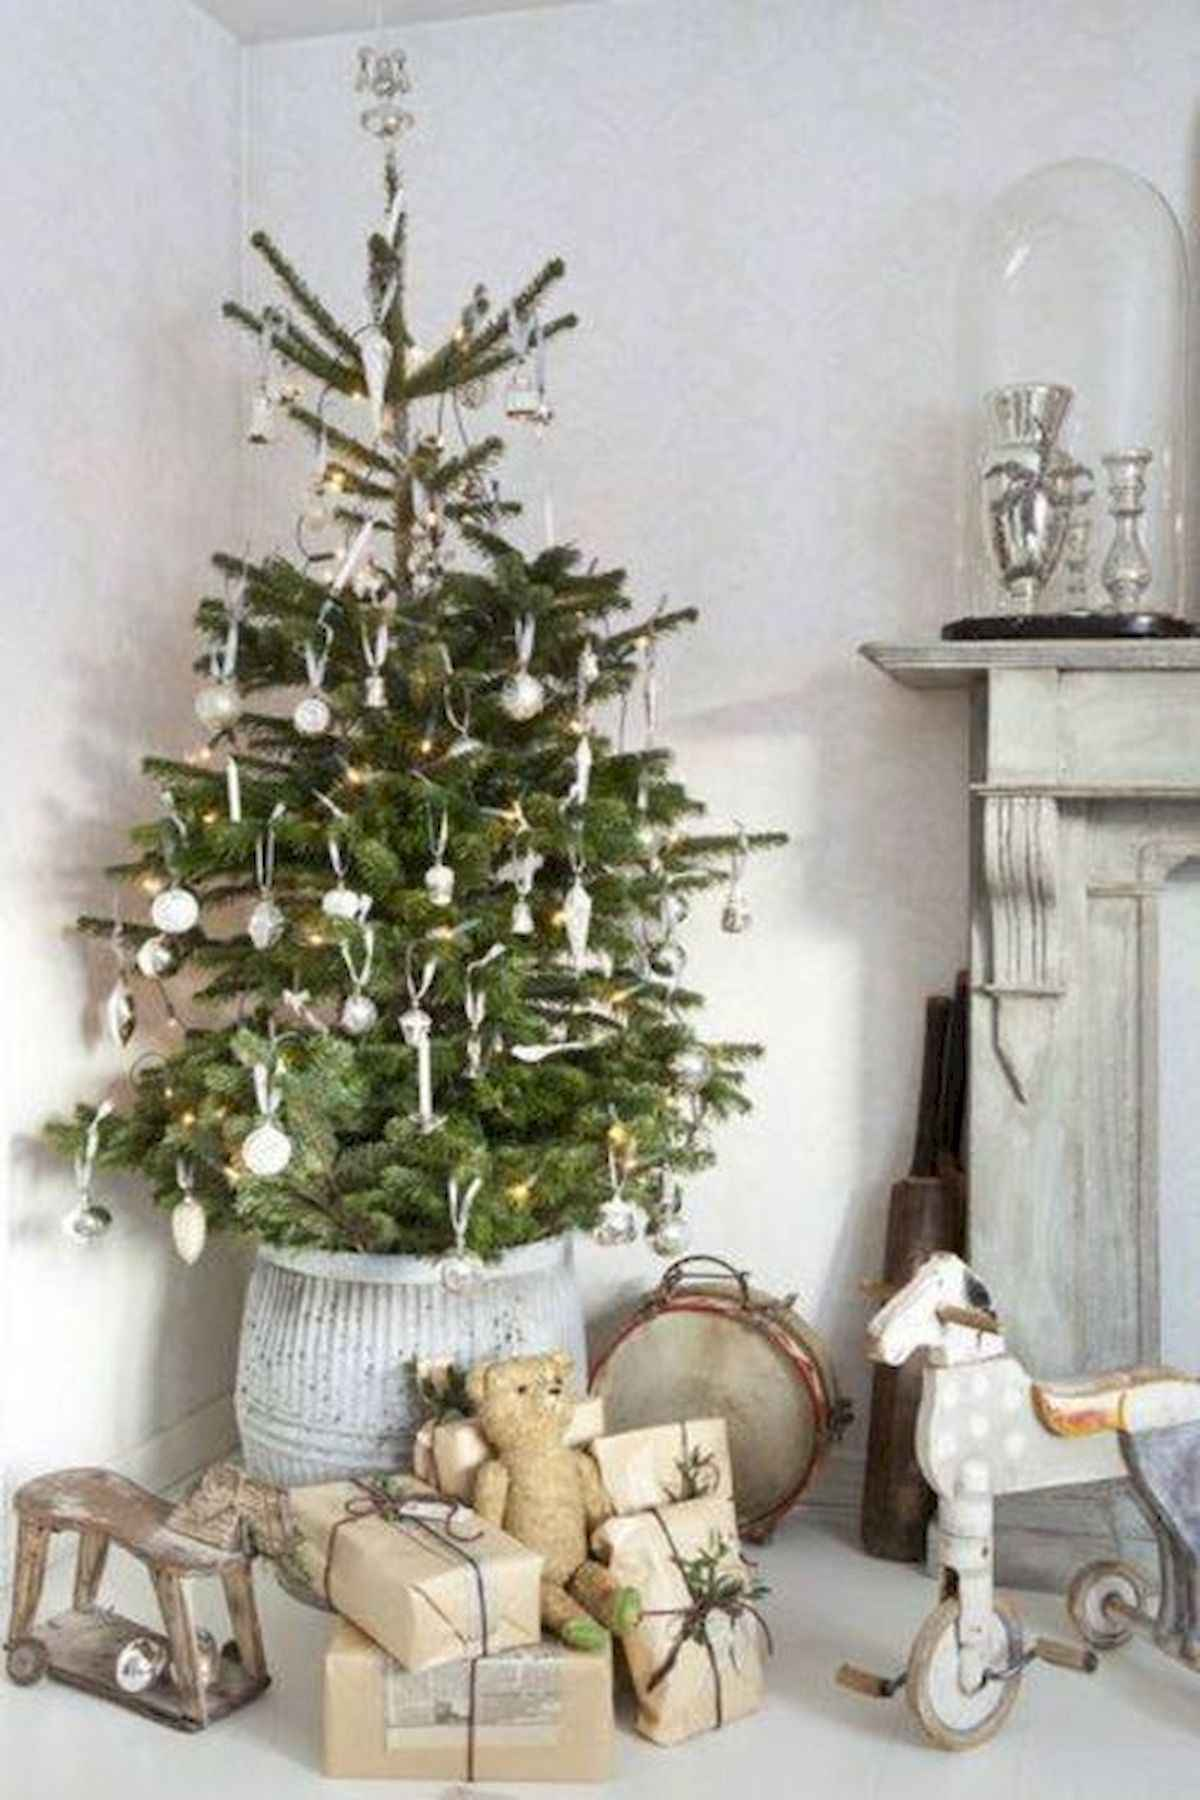 60 awesome christmas tree decorations ideas (12)